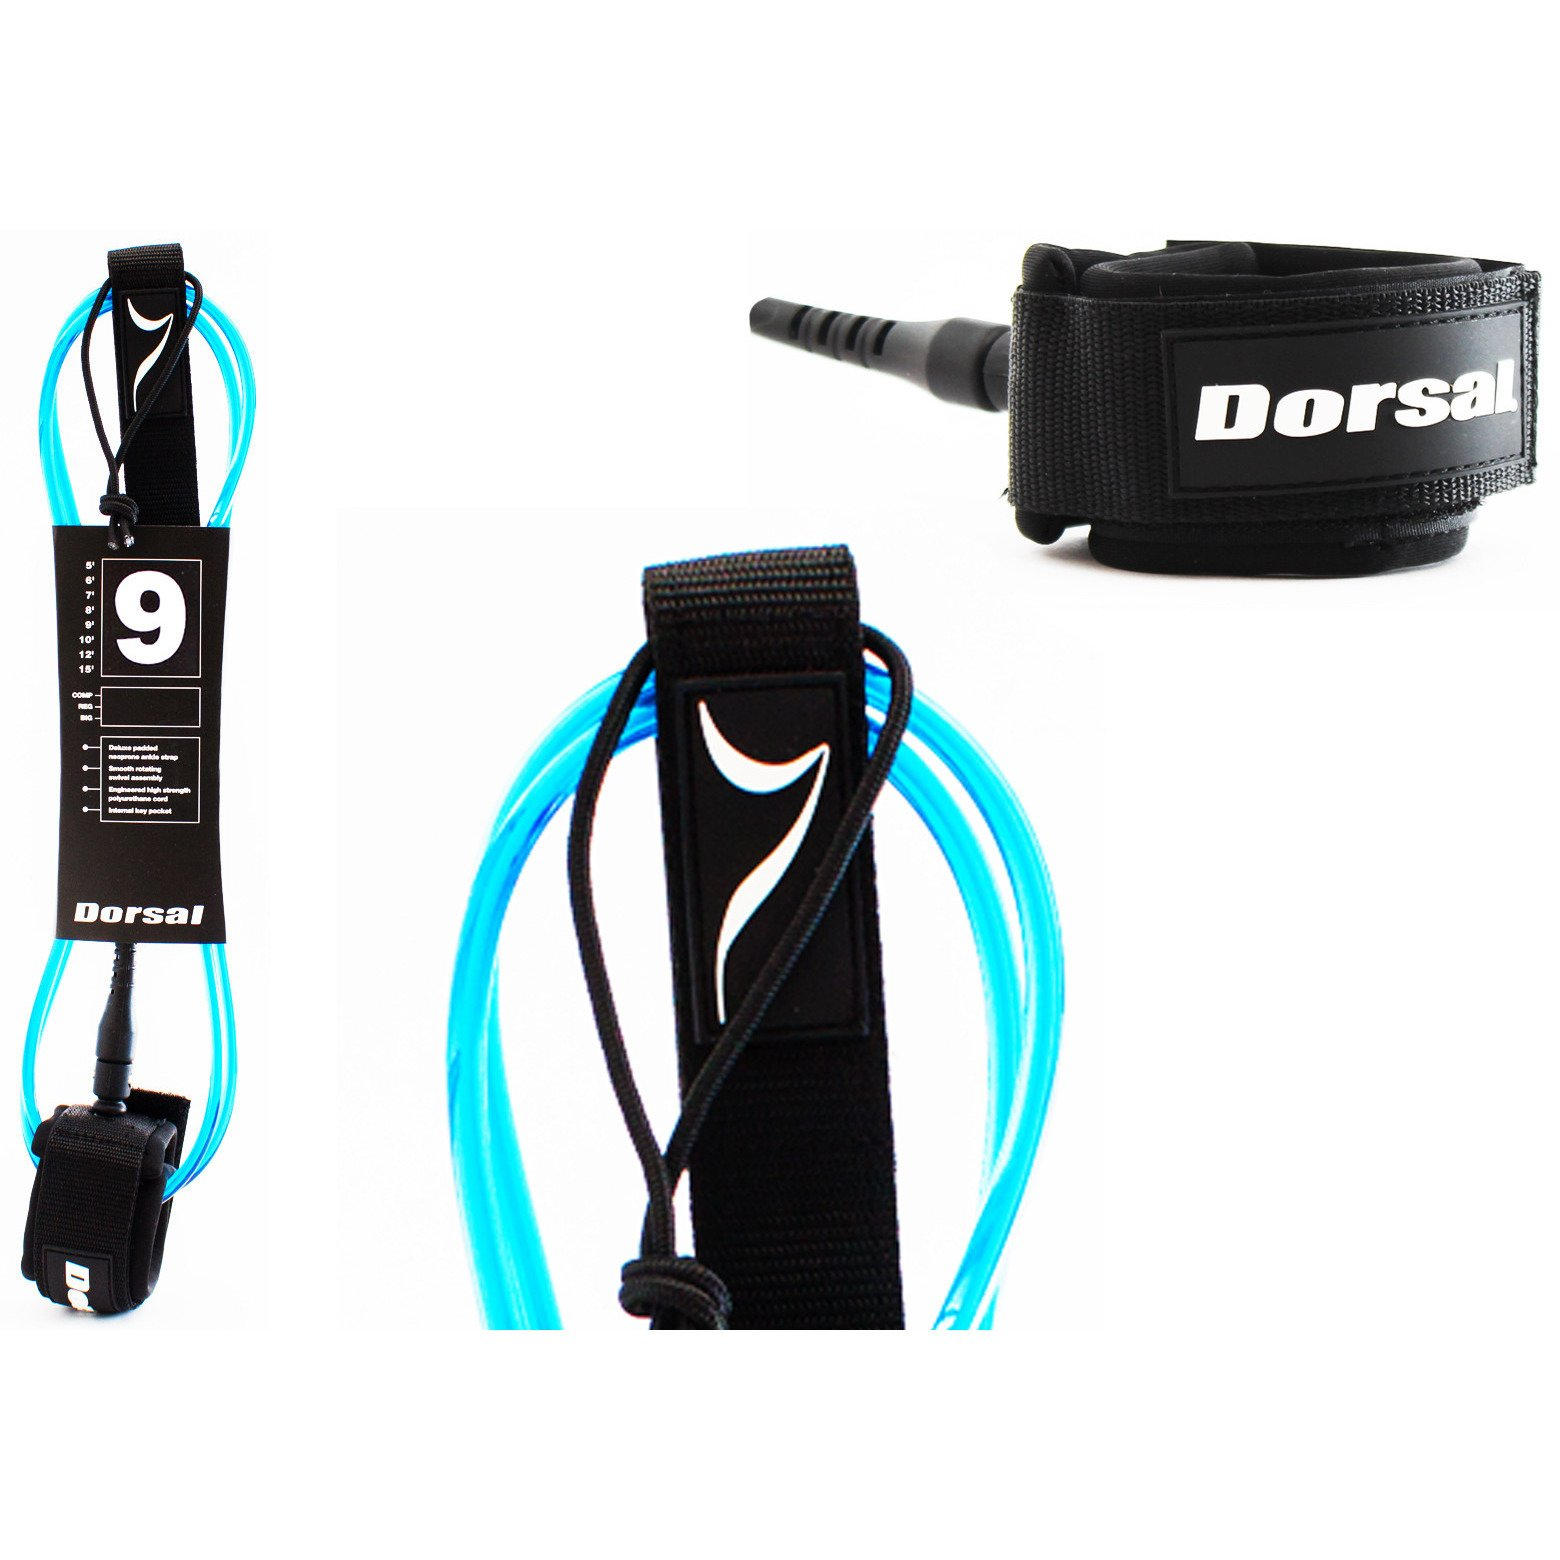 Dorsal Premium Surfboard 6, 7, 8, 9, 10 FT Surf Leash - Blue